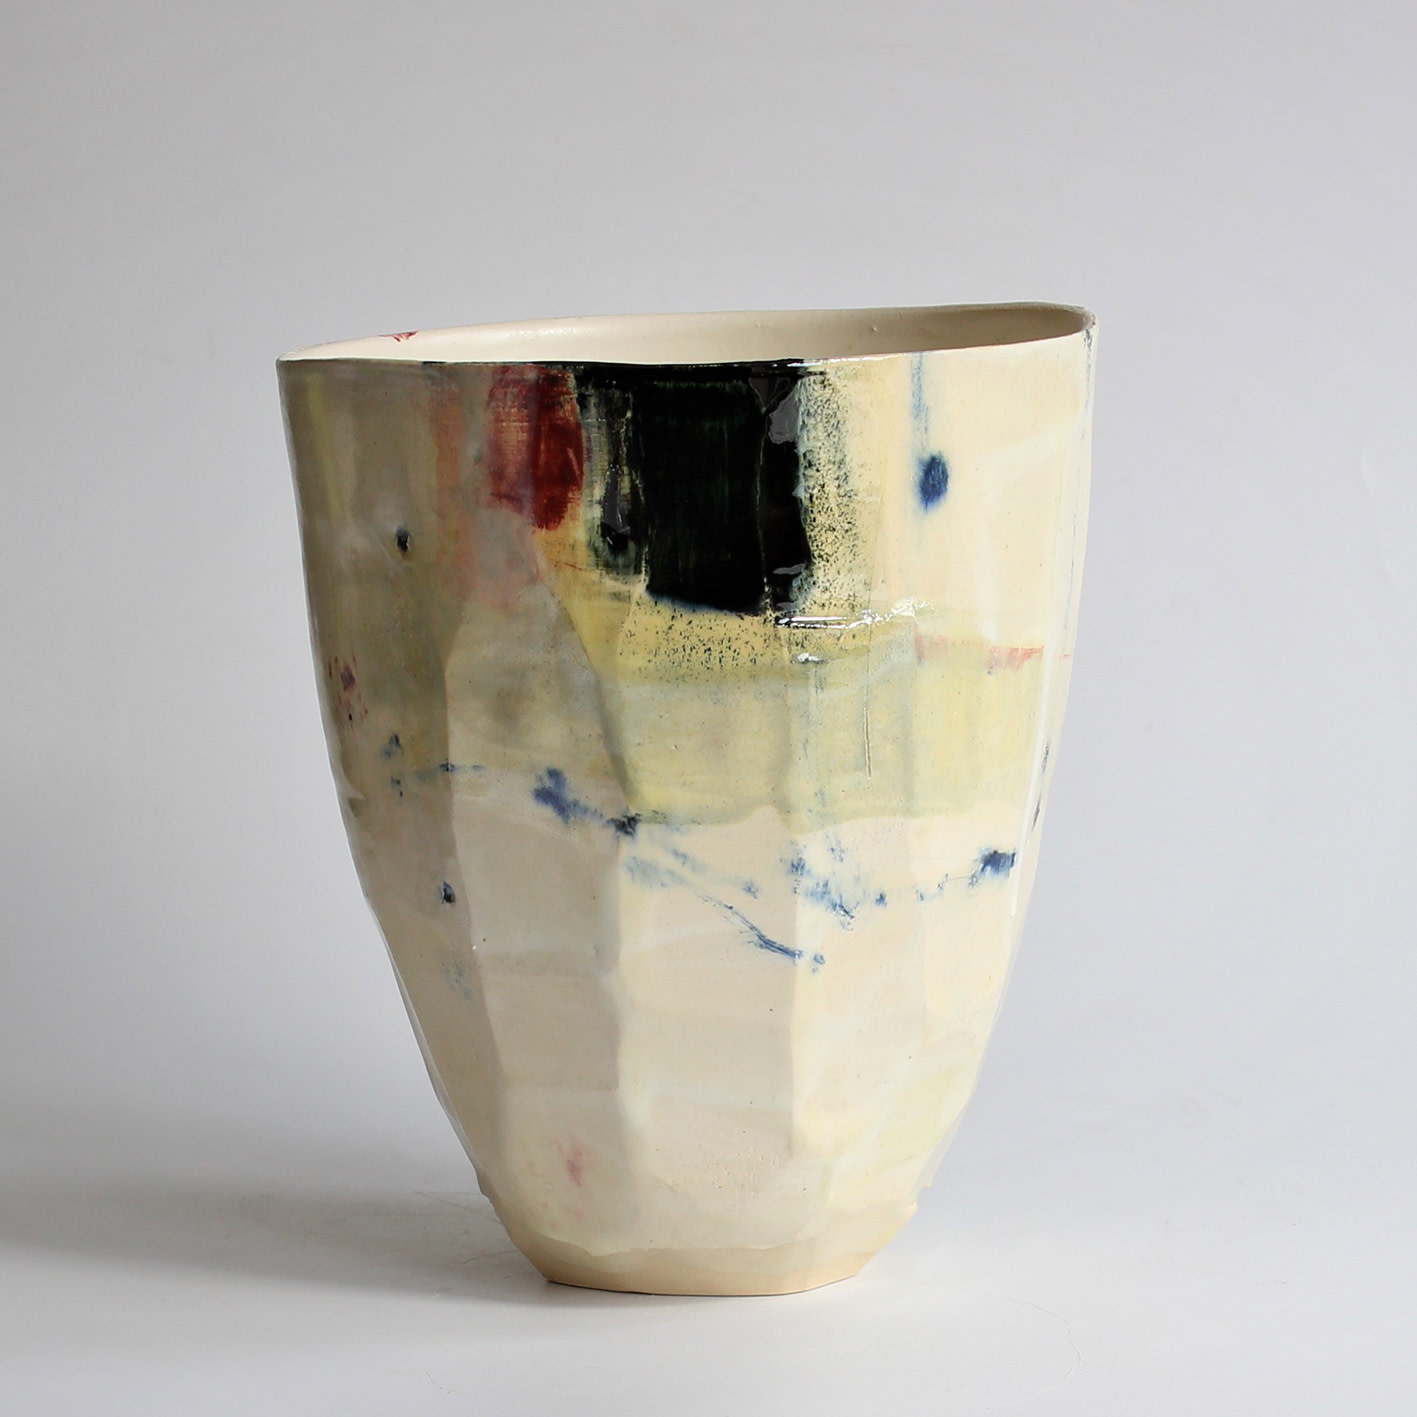 "<span class=""link fancybox-details-link""><a href=""/artists/34-barry-stedman/works/6720-barry-stedman-each-passing-day-series-vessel-a-2019/"">View Detail Page</a></span><div class=""artist""><strong>Barry Stedman</strong></div> <div class=""title""><em>'Each Passing Day' Series Vessel (A)</em>, 2019</div> <div class=""medium"">thrown, altered earthenware</div> <div class=""dimensions"">21 x 17 cm</div><div class=""price"">£352.00</div><div class=""copyright_line"">Own Art: £ 35.20 x 10 Months, 0% APR</div>"